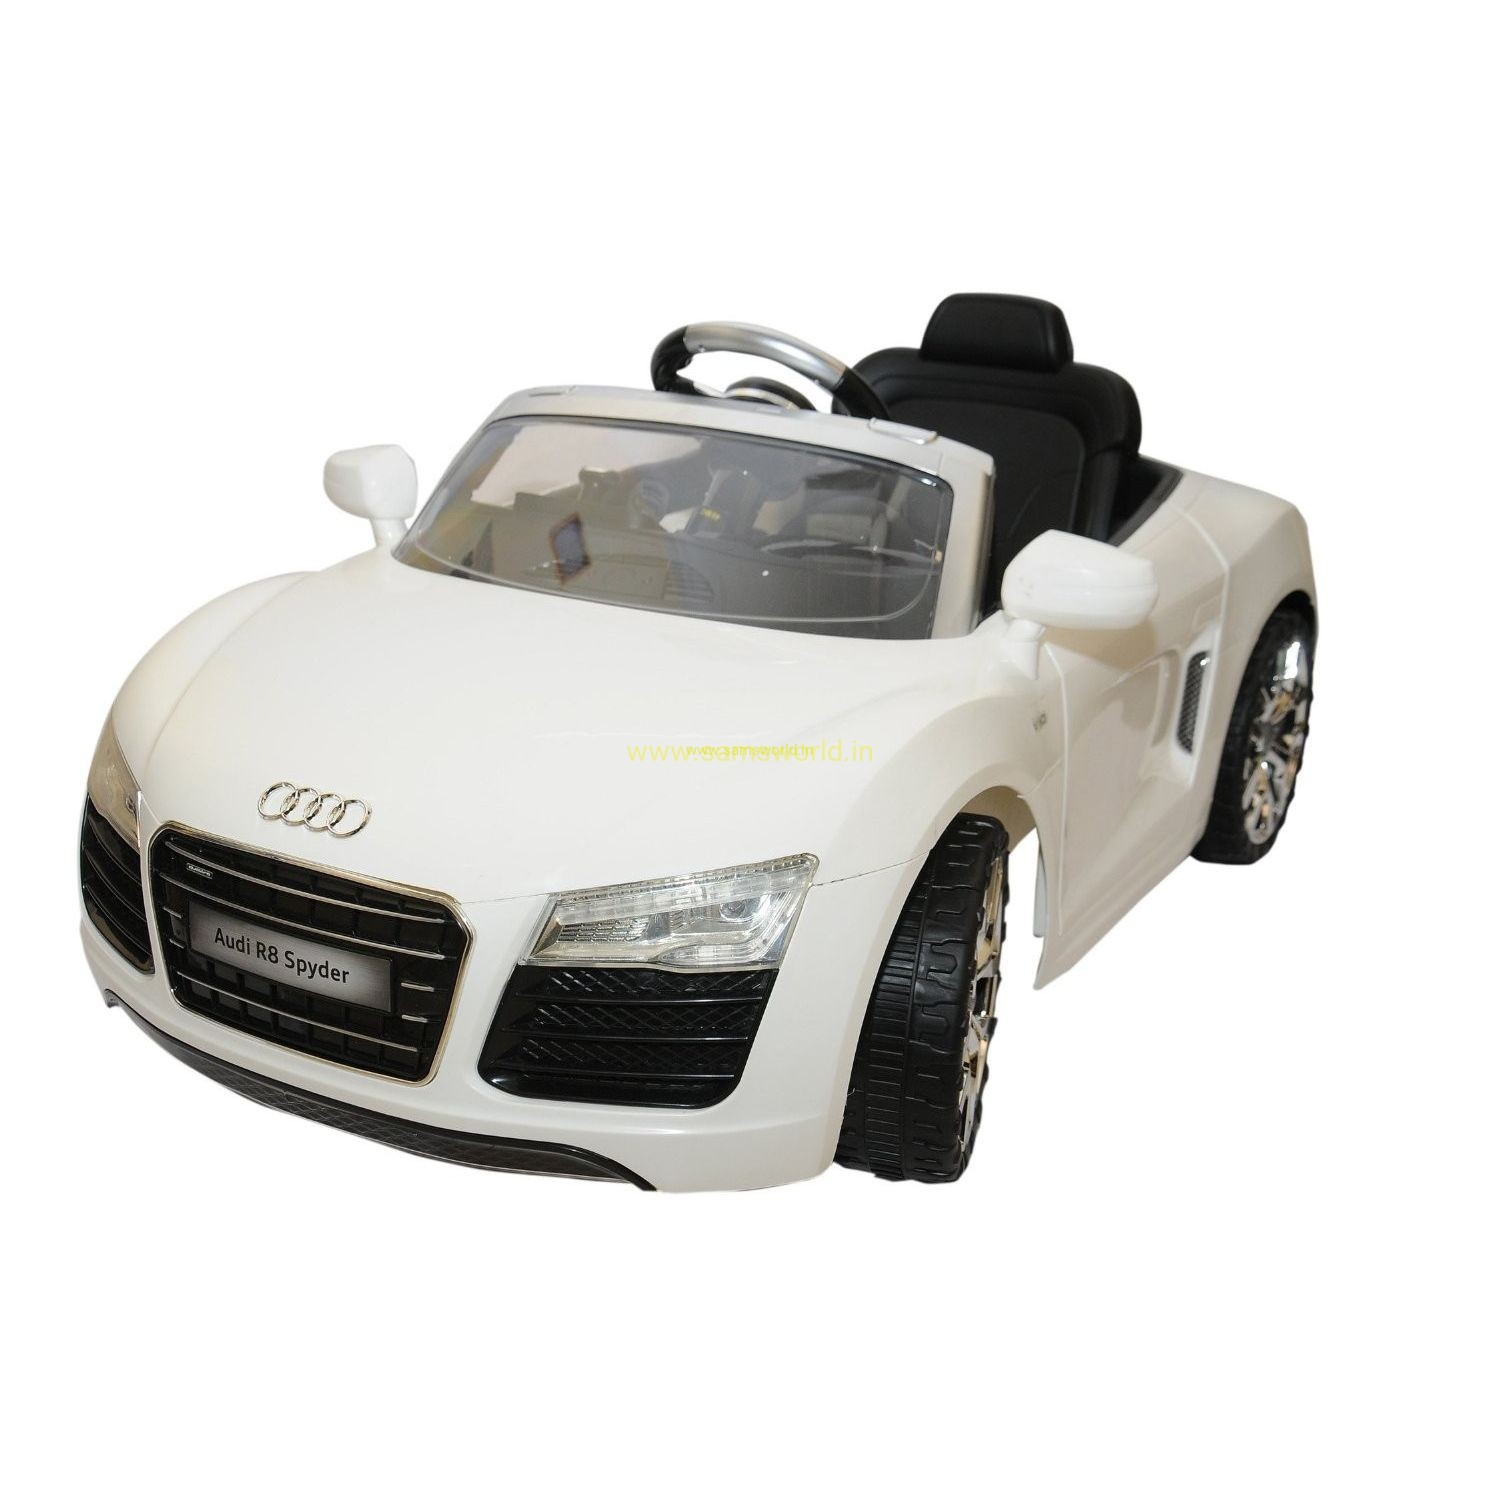 audi r8 spyder type model battery operated ride on car with remote control for kids